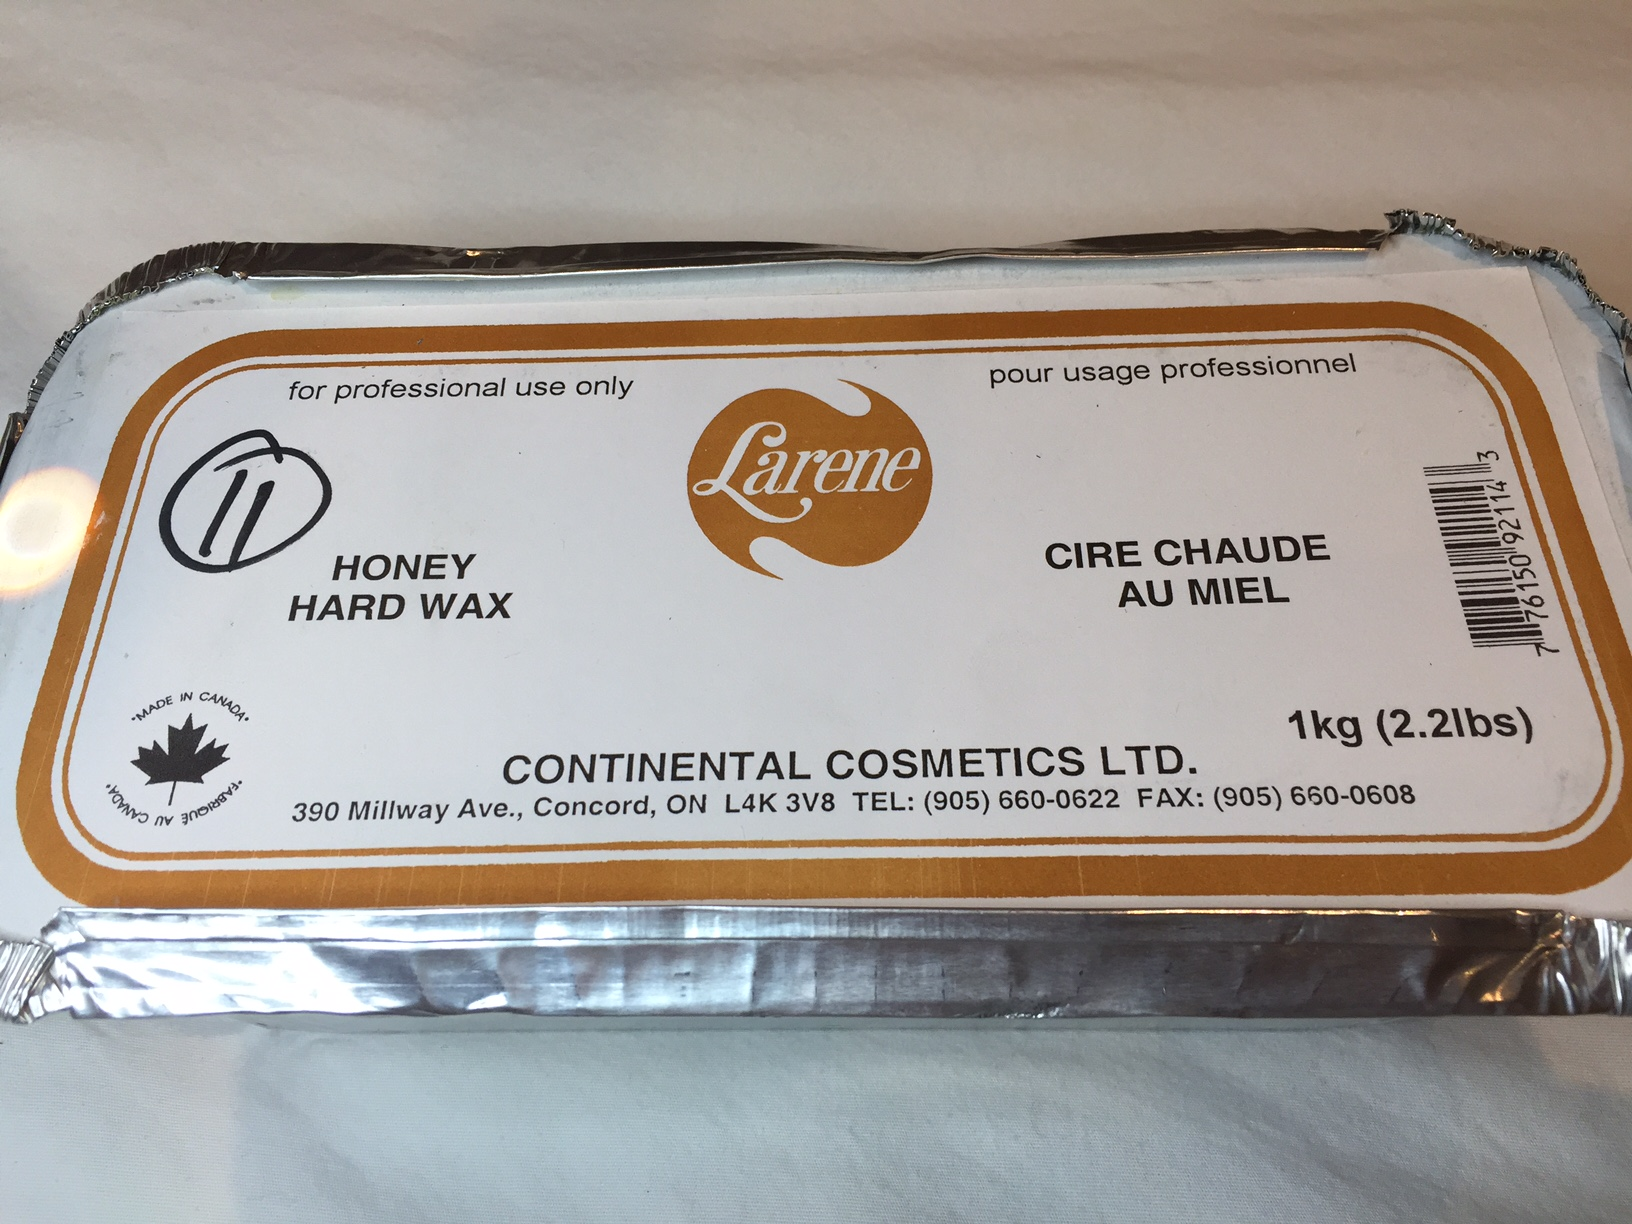 Hard Wax- Larene Brazilian, Underarm , face Honey Hard Wax economic package 1kg